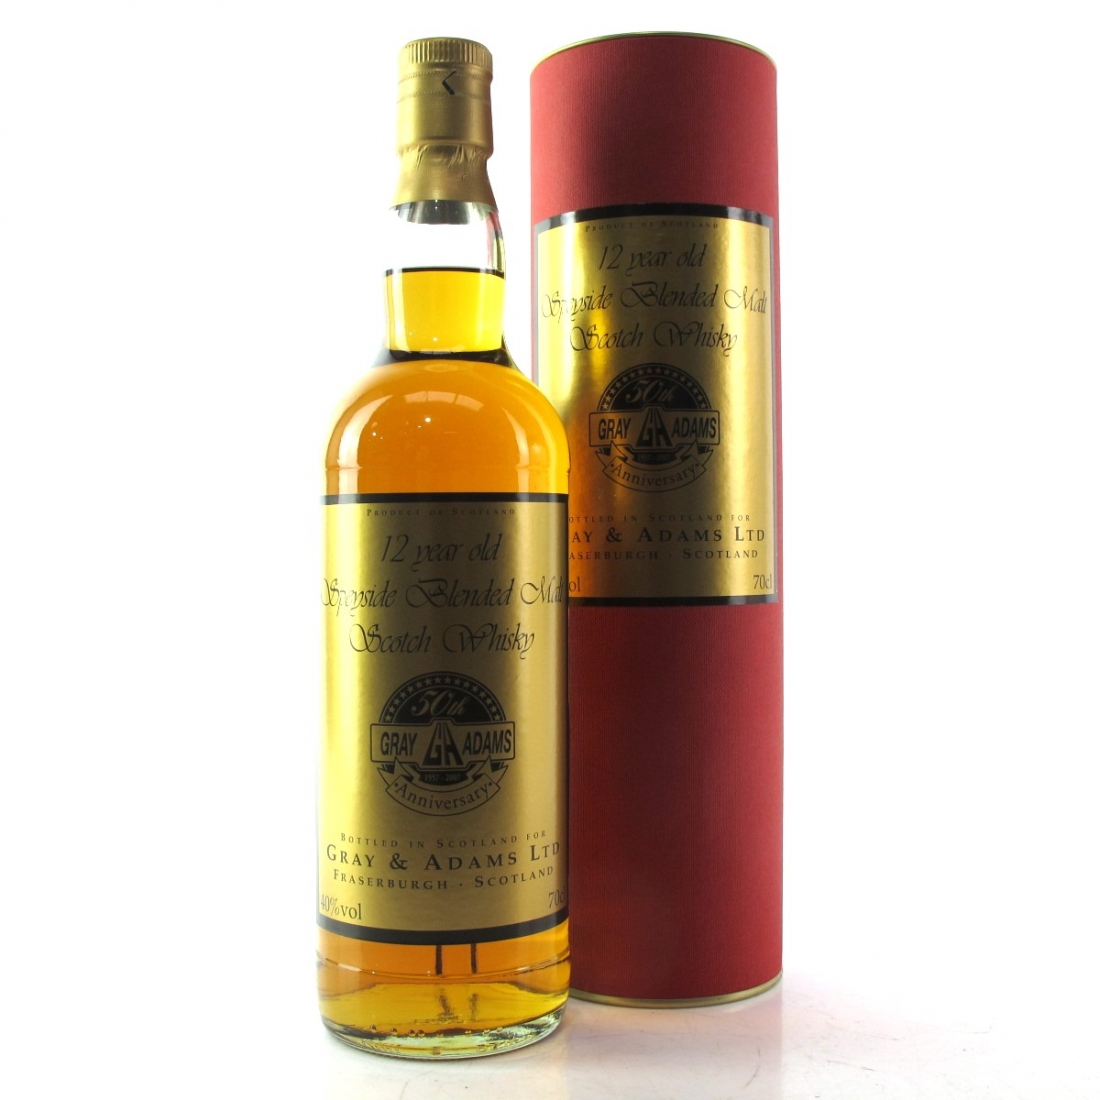 Gray and Adams 12 Year Old Speyside Blended Malt